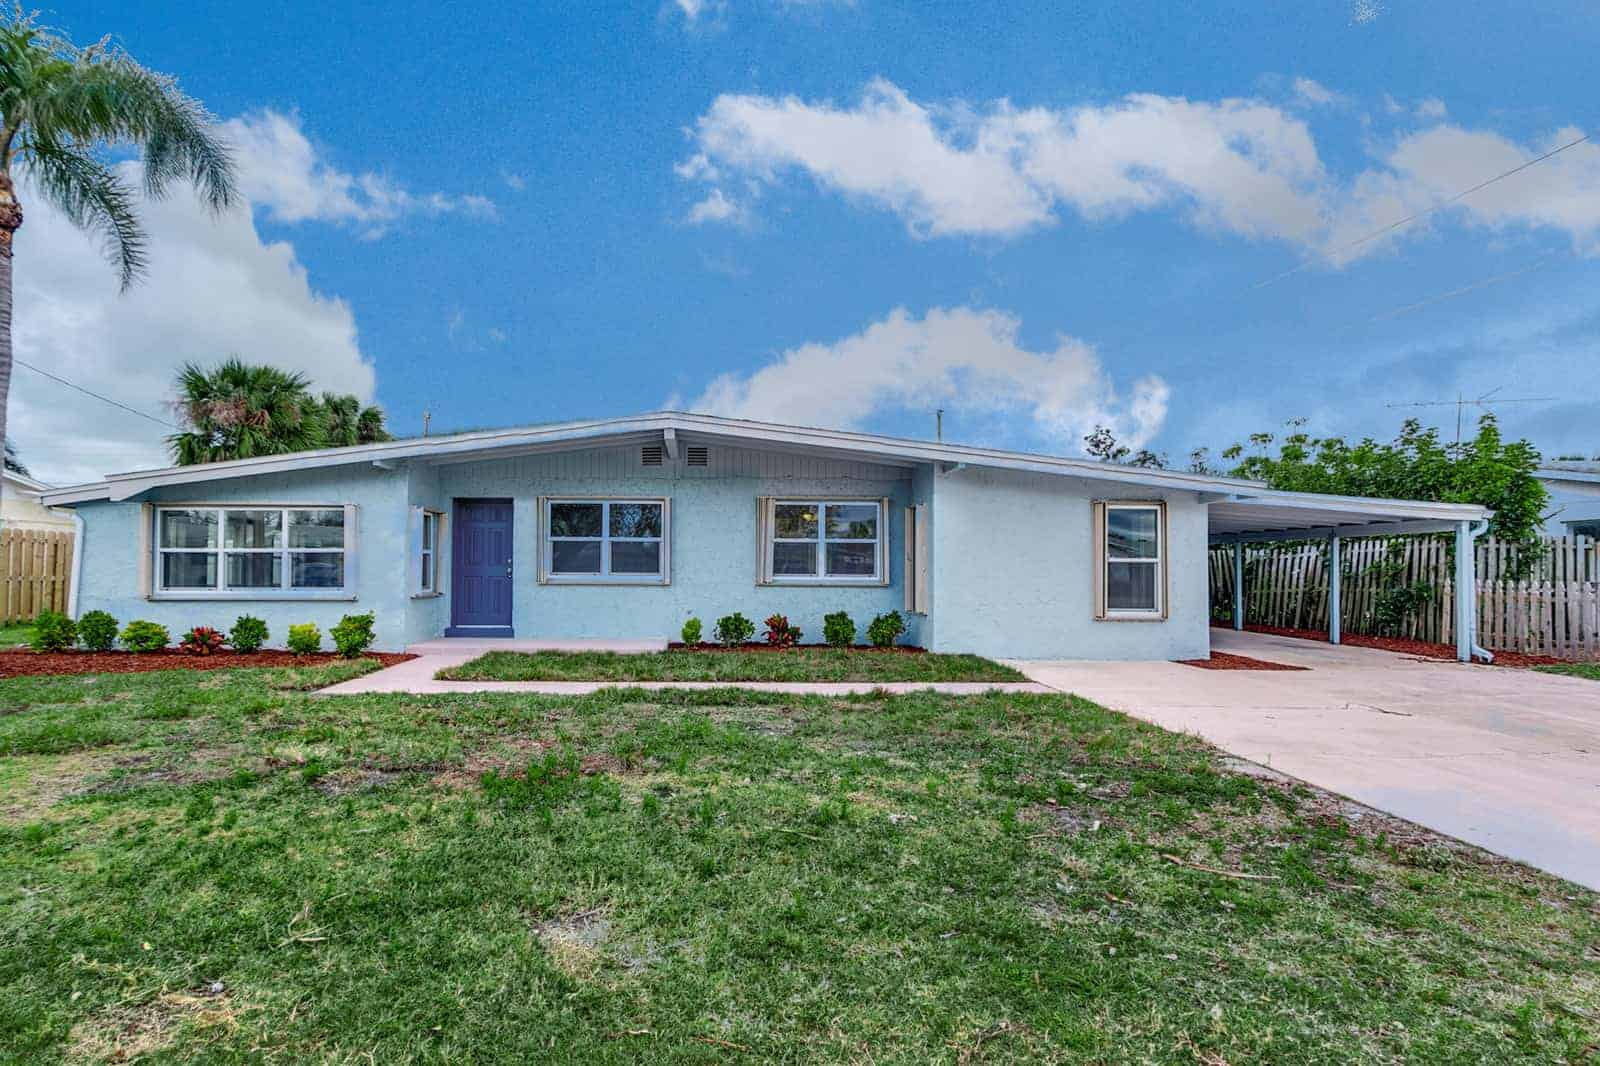 JUST LISTED – 178 Clairbourne Avenue, Satellite Beach, FL 32937 – $290,000